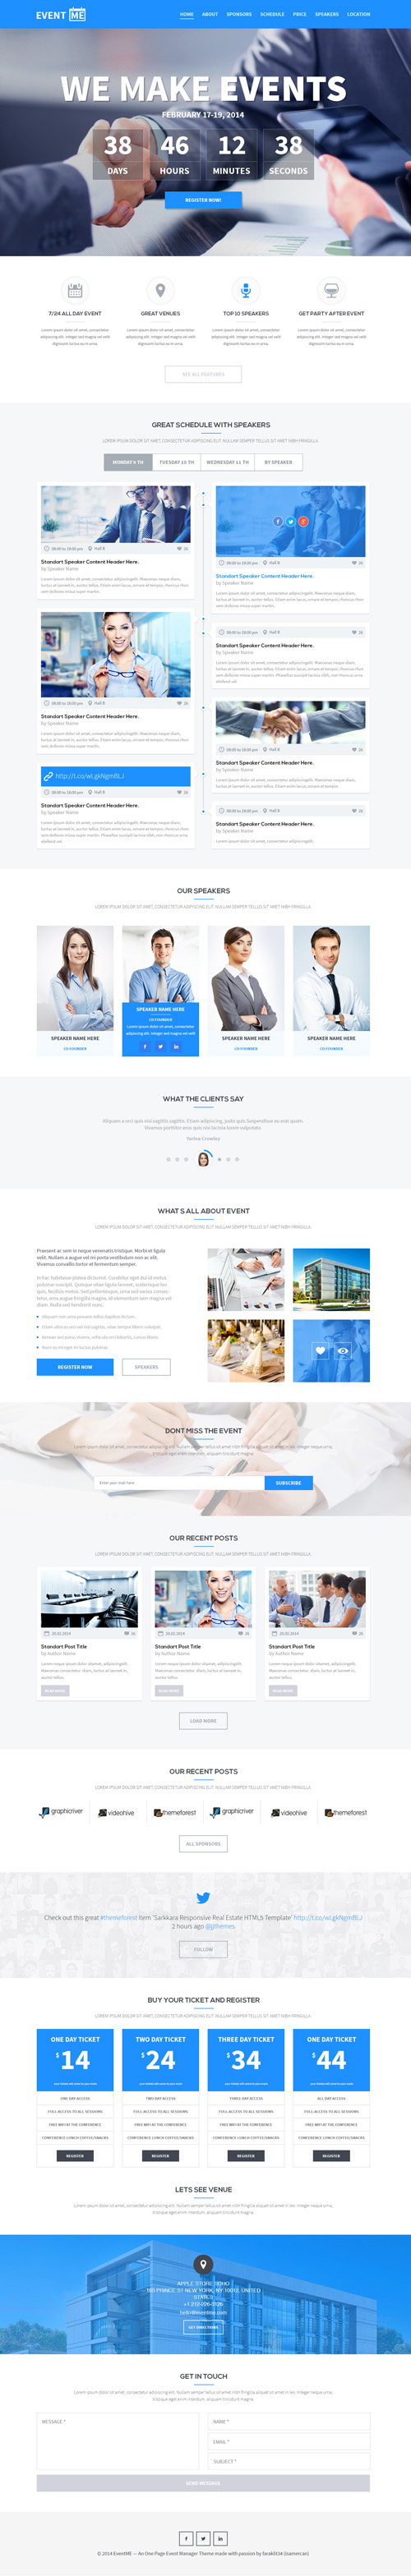 EventME-One Page Event Manager Theme